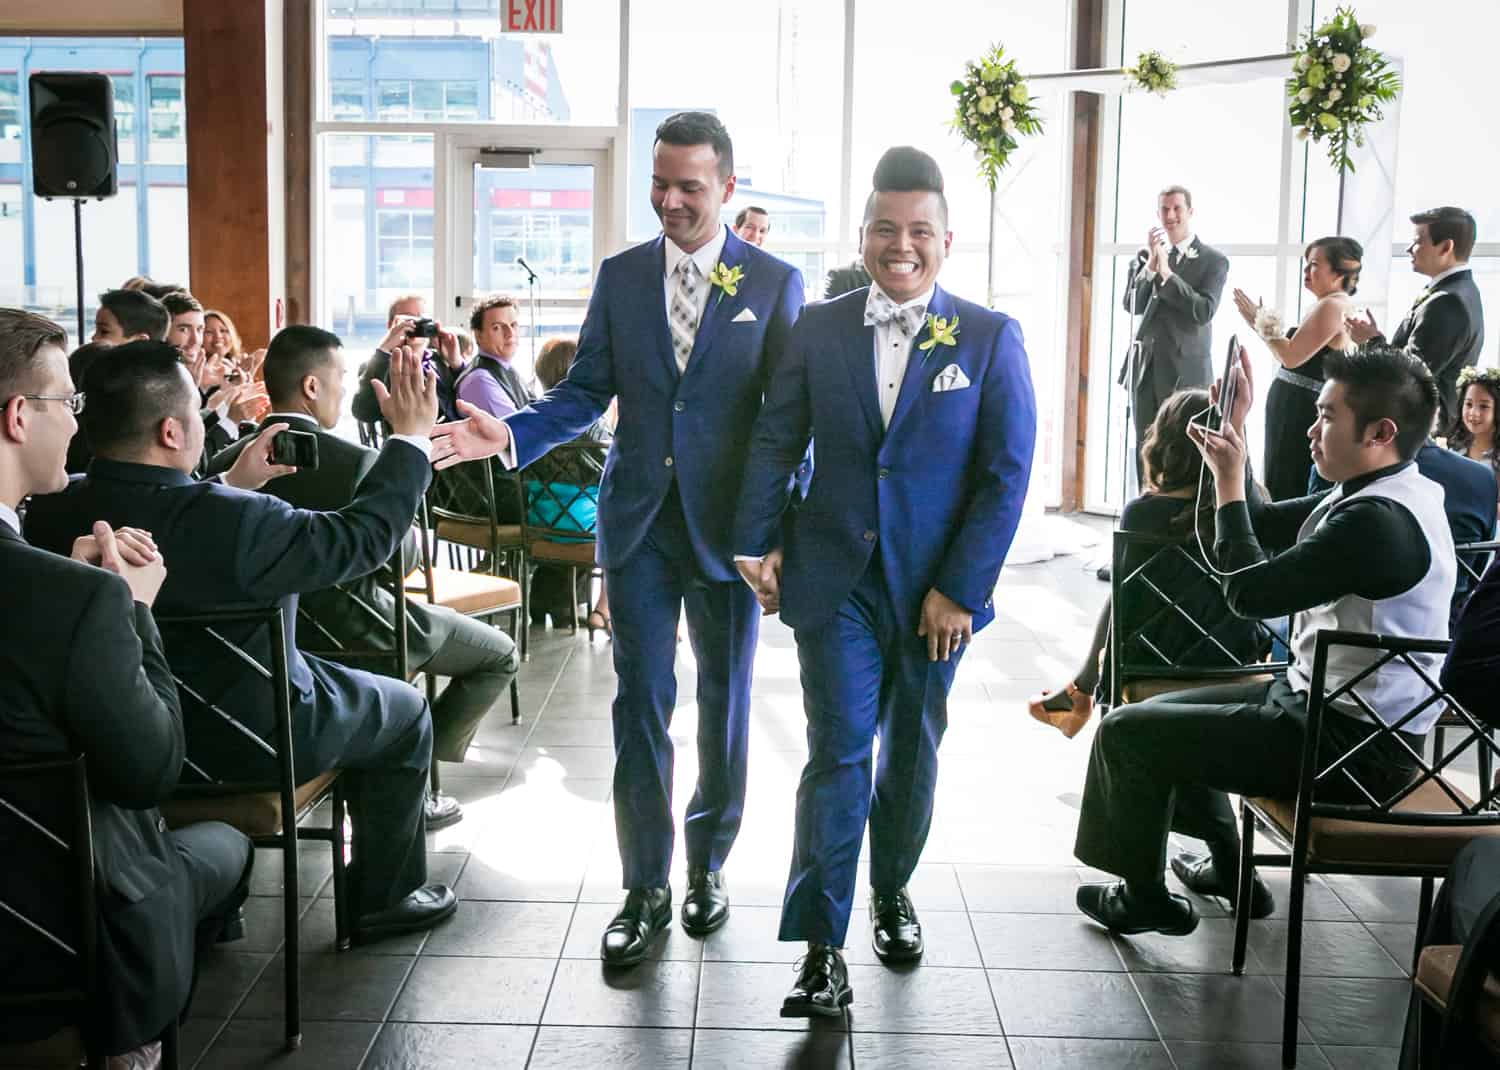 Two grooms walking out of ceremony at a Lighthouse at Chelsea Piers wedding